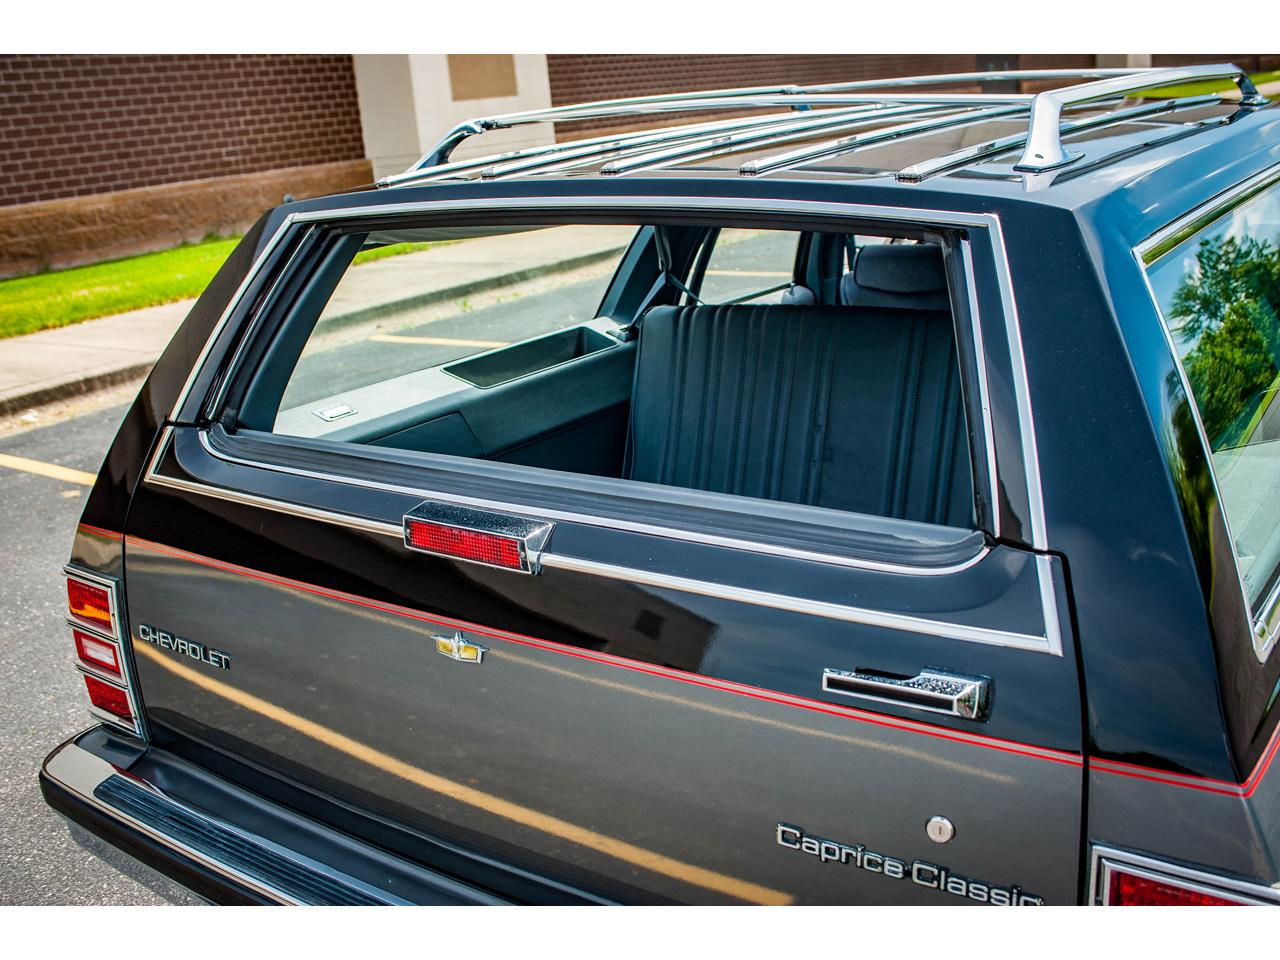 Large Picture of 1989 Caprice - $17,995.00 Offered by Gateway Classic Cars - St. Louis - QB9K